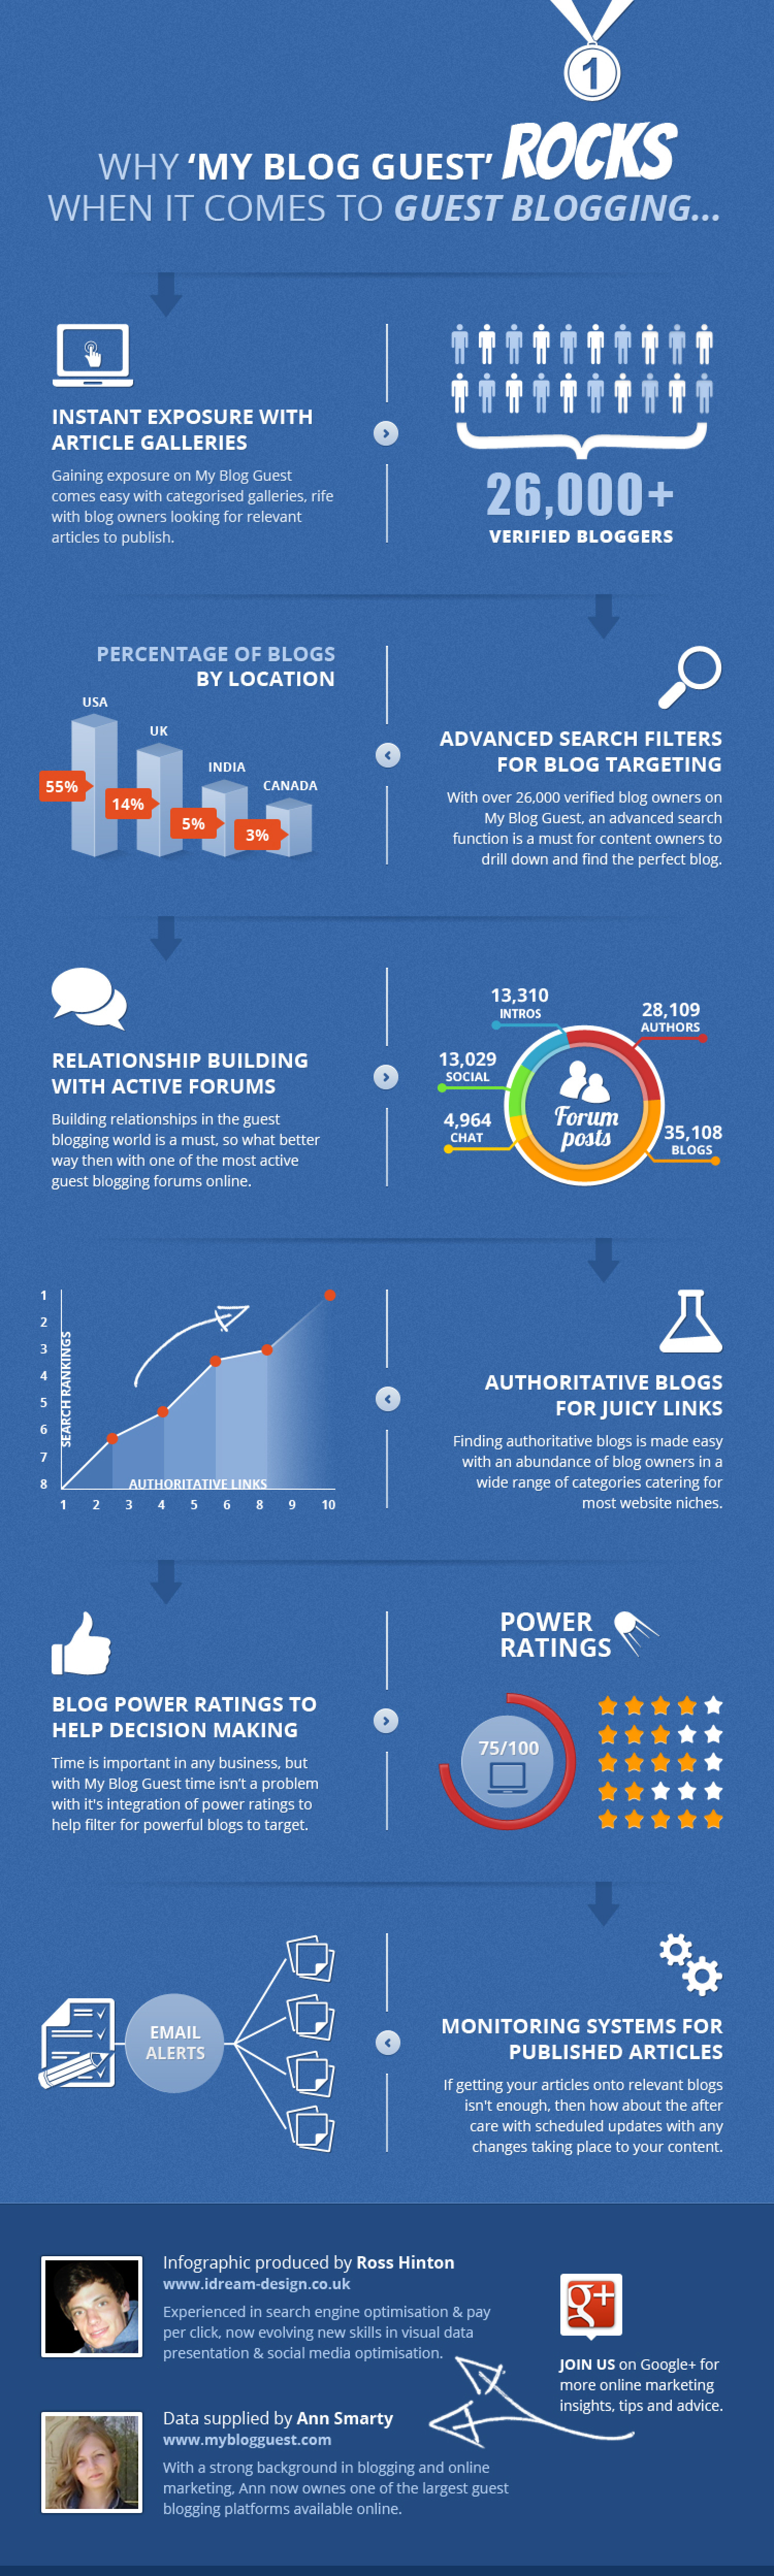 Why MyBlogGuest ROCKS Infographic